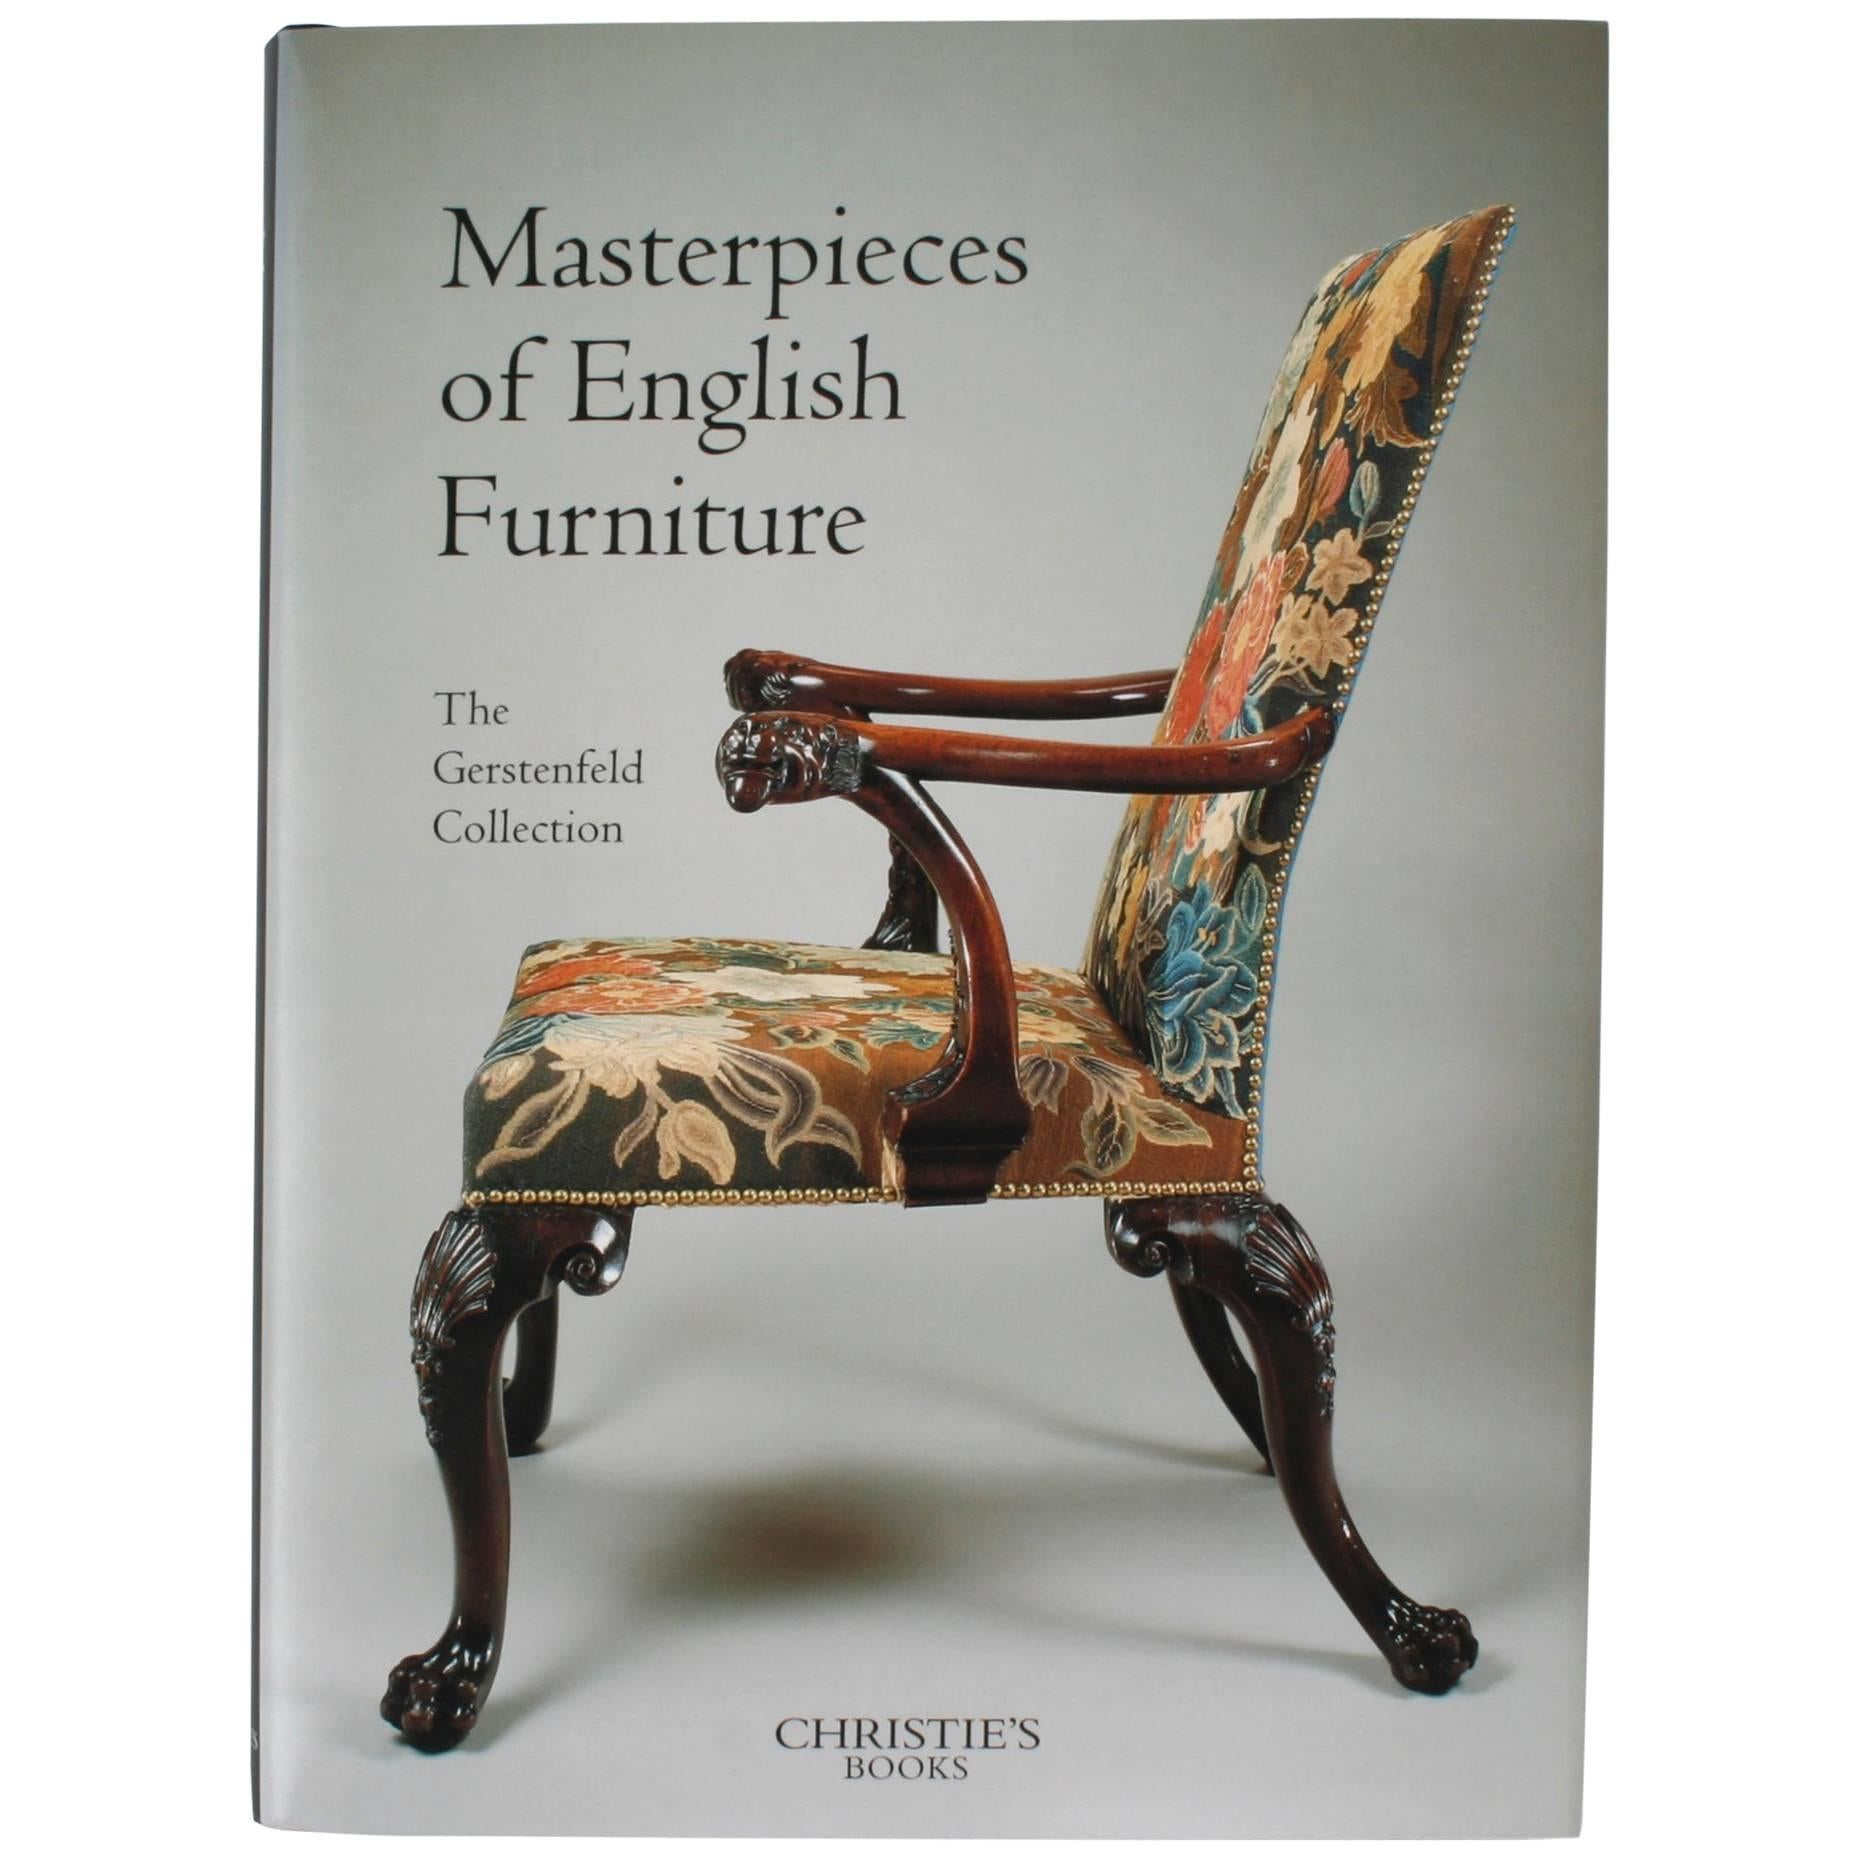 Masterpieces of English Furniture, The Gerstenfeld Collection, 1st Edition